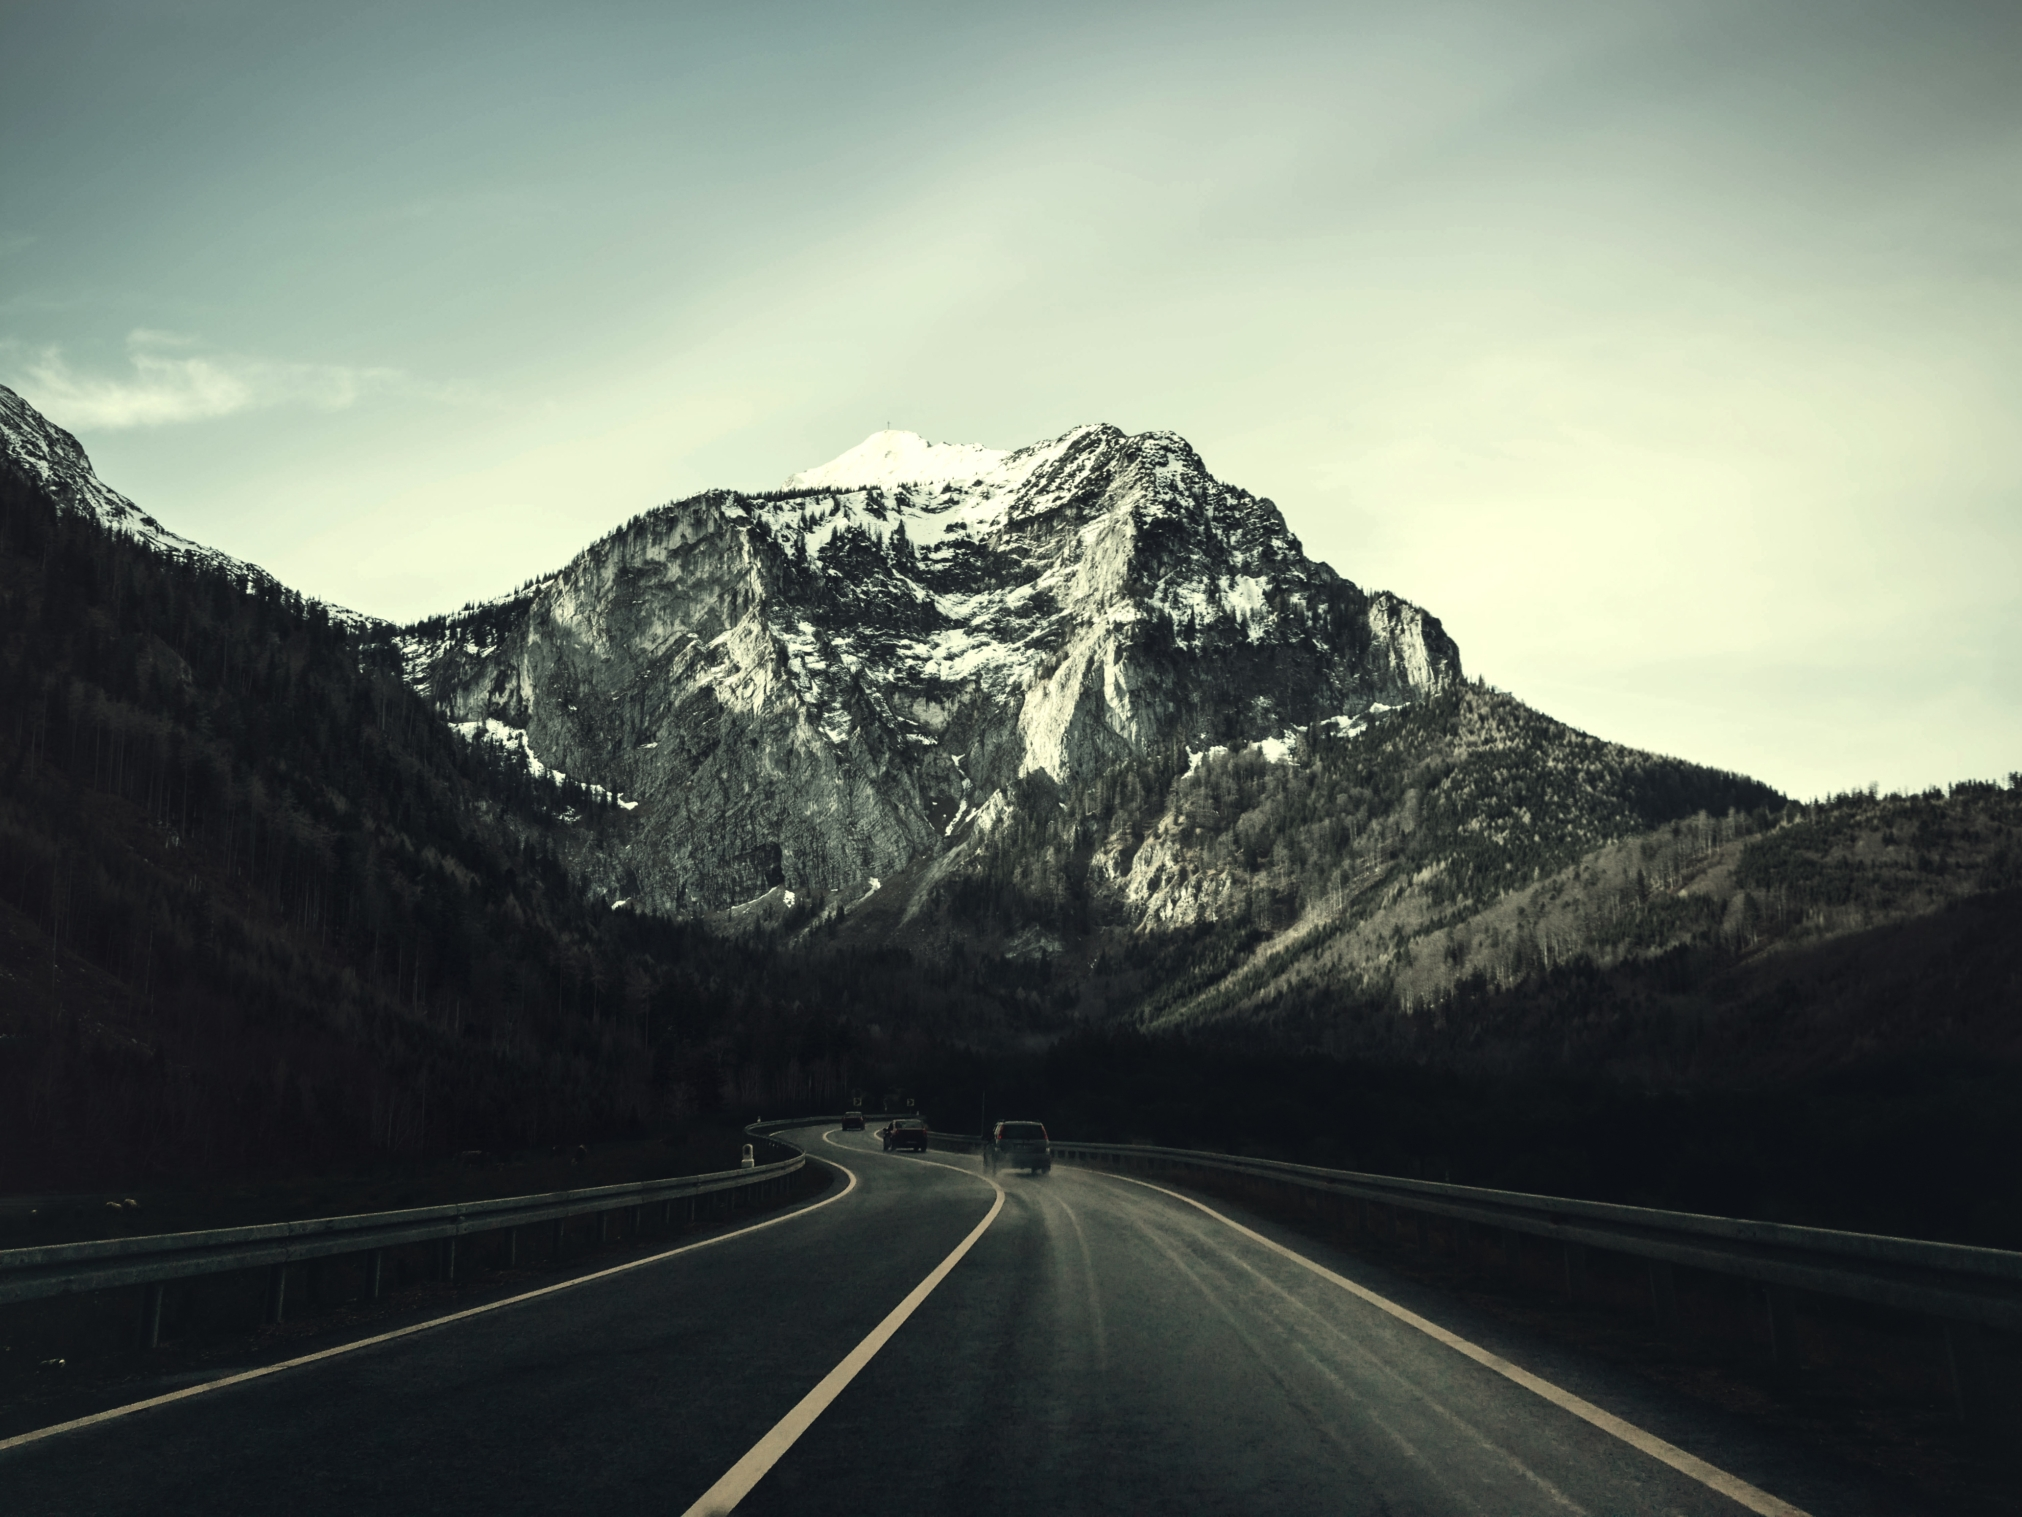 Mountain road